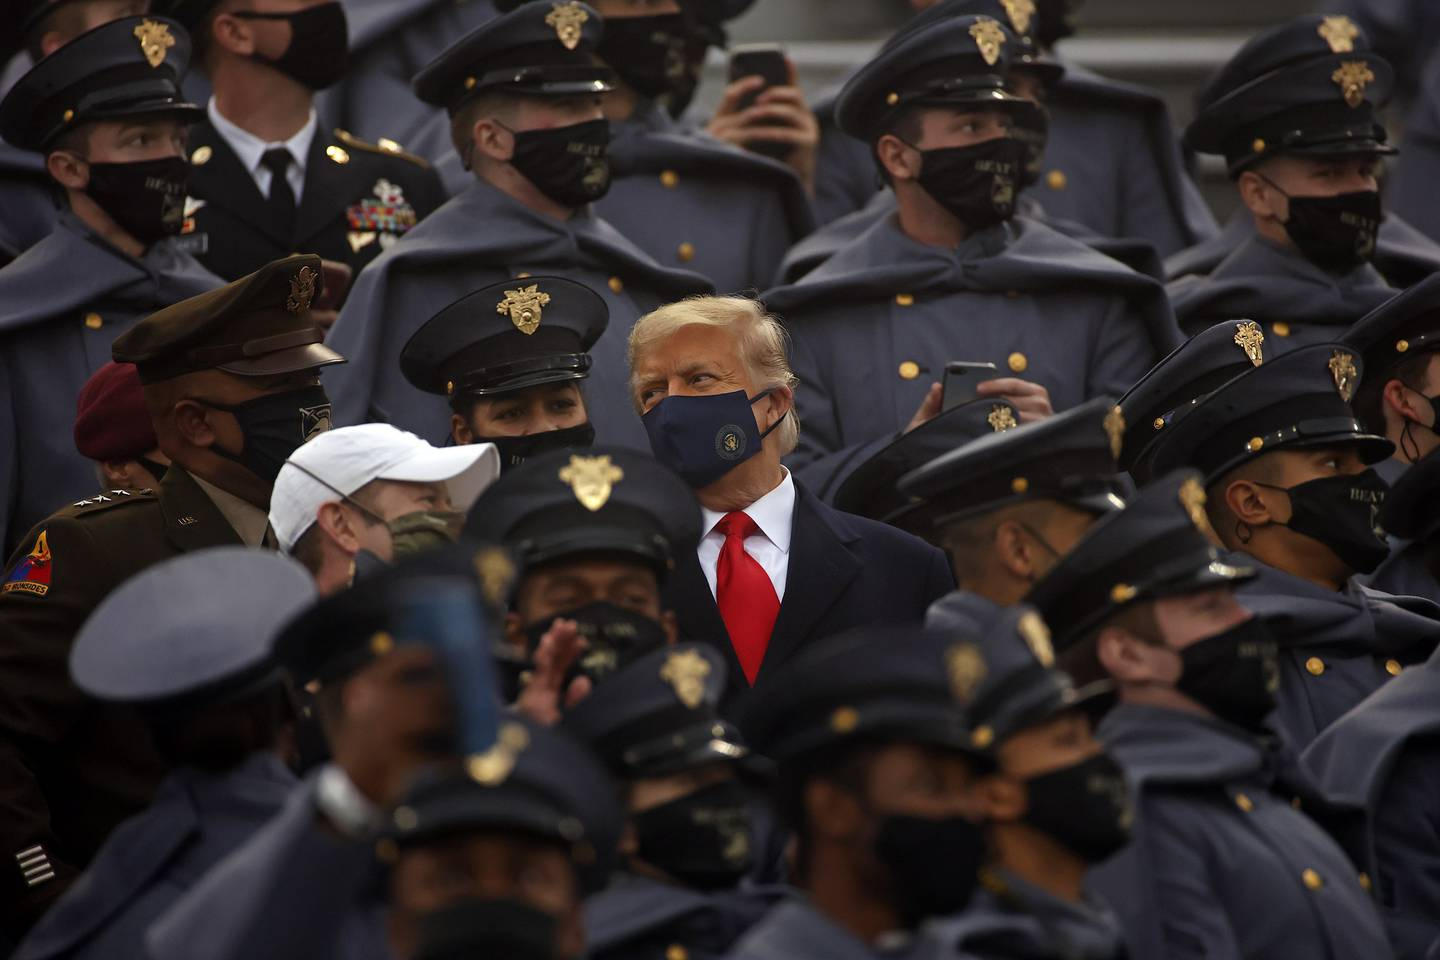 President Donald Trump watches an NCAA college football game with Army cadets during the Army-Navy NCAA college football game on Saturday, Dec. 12, 2020, in West Point, N.Y.